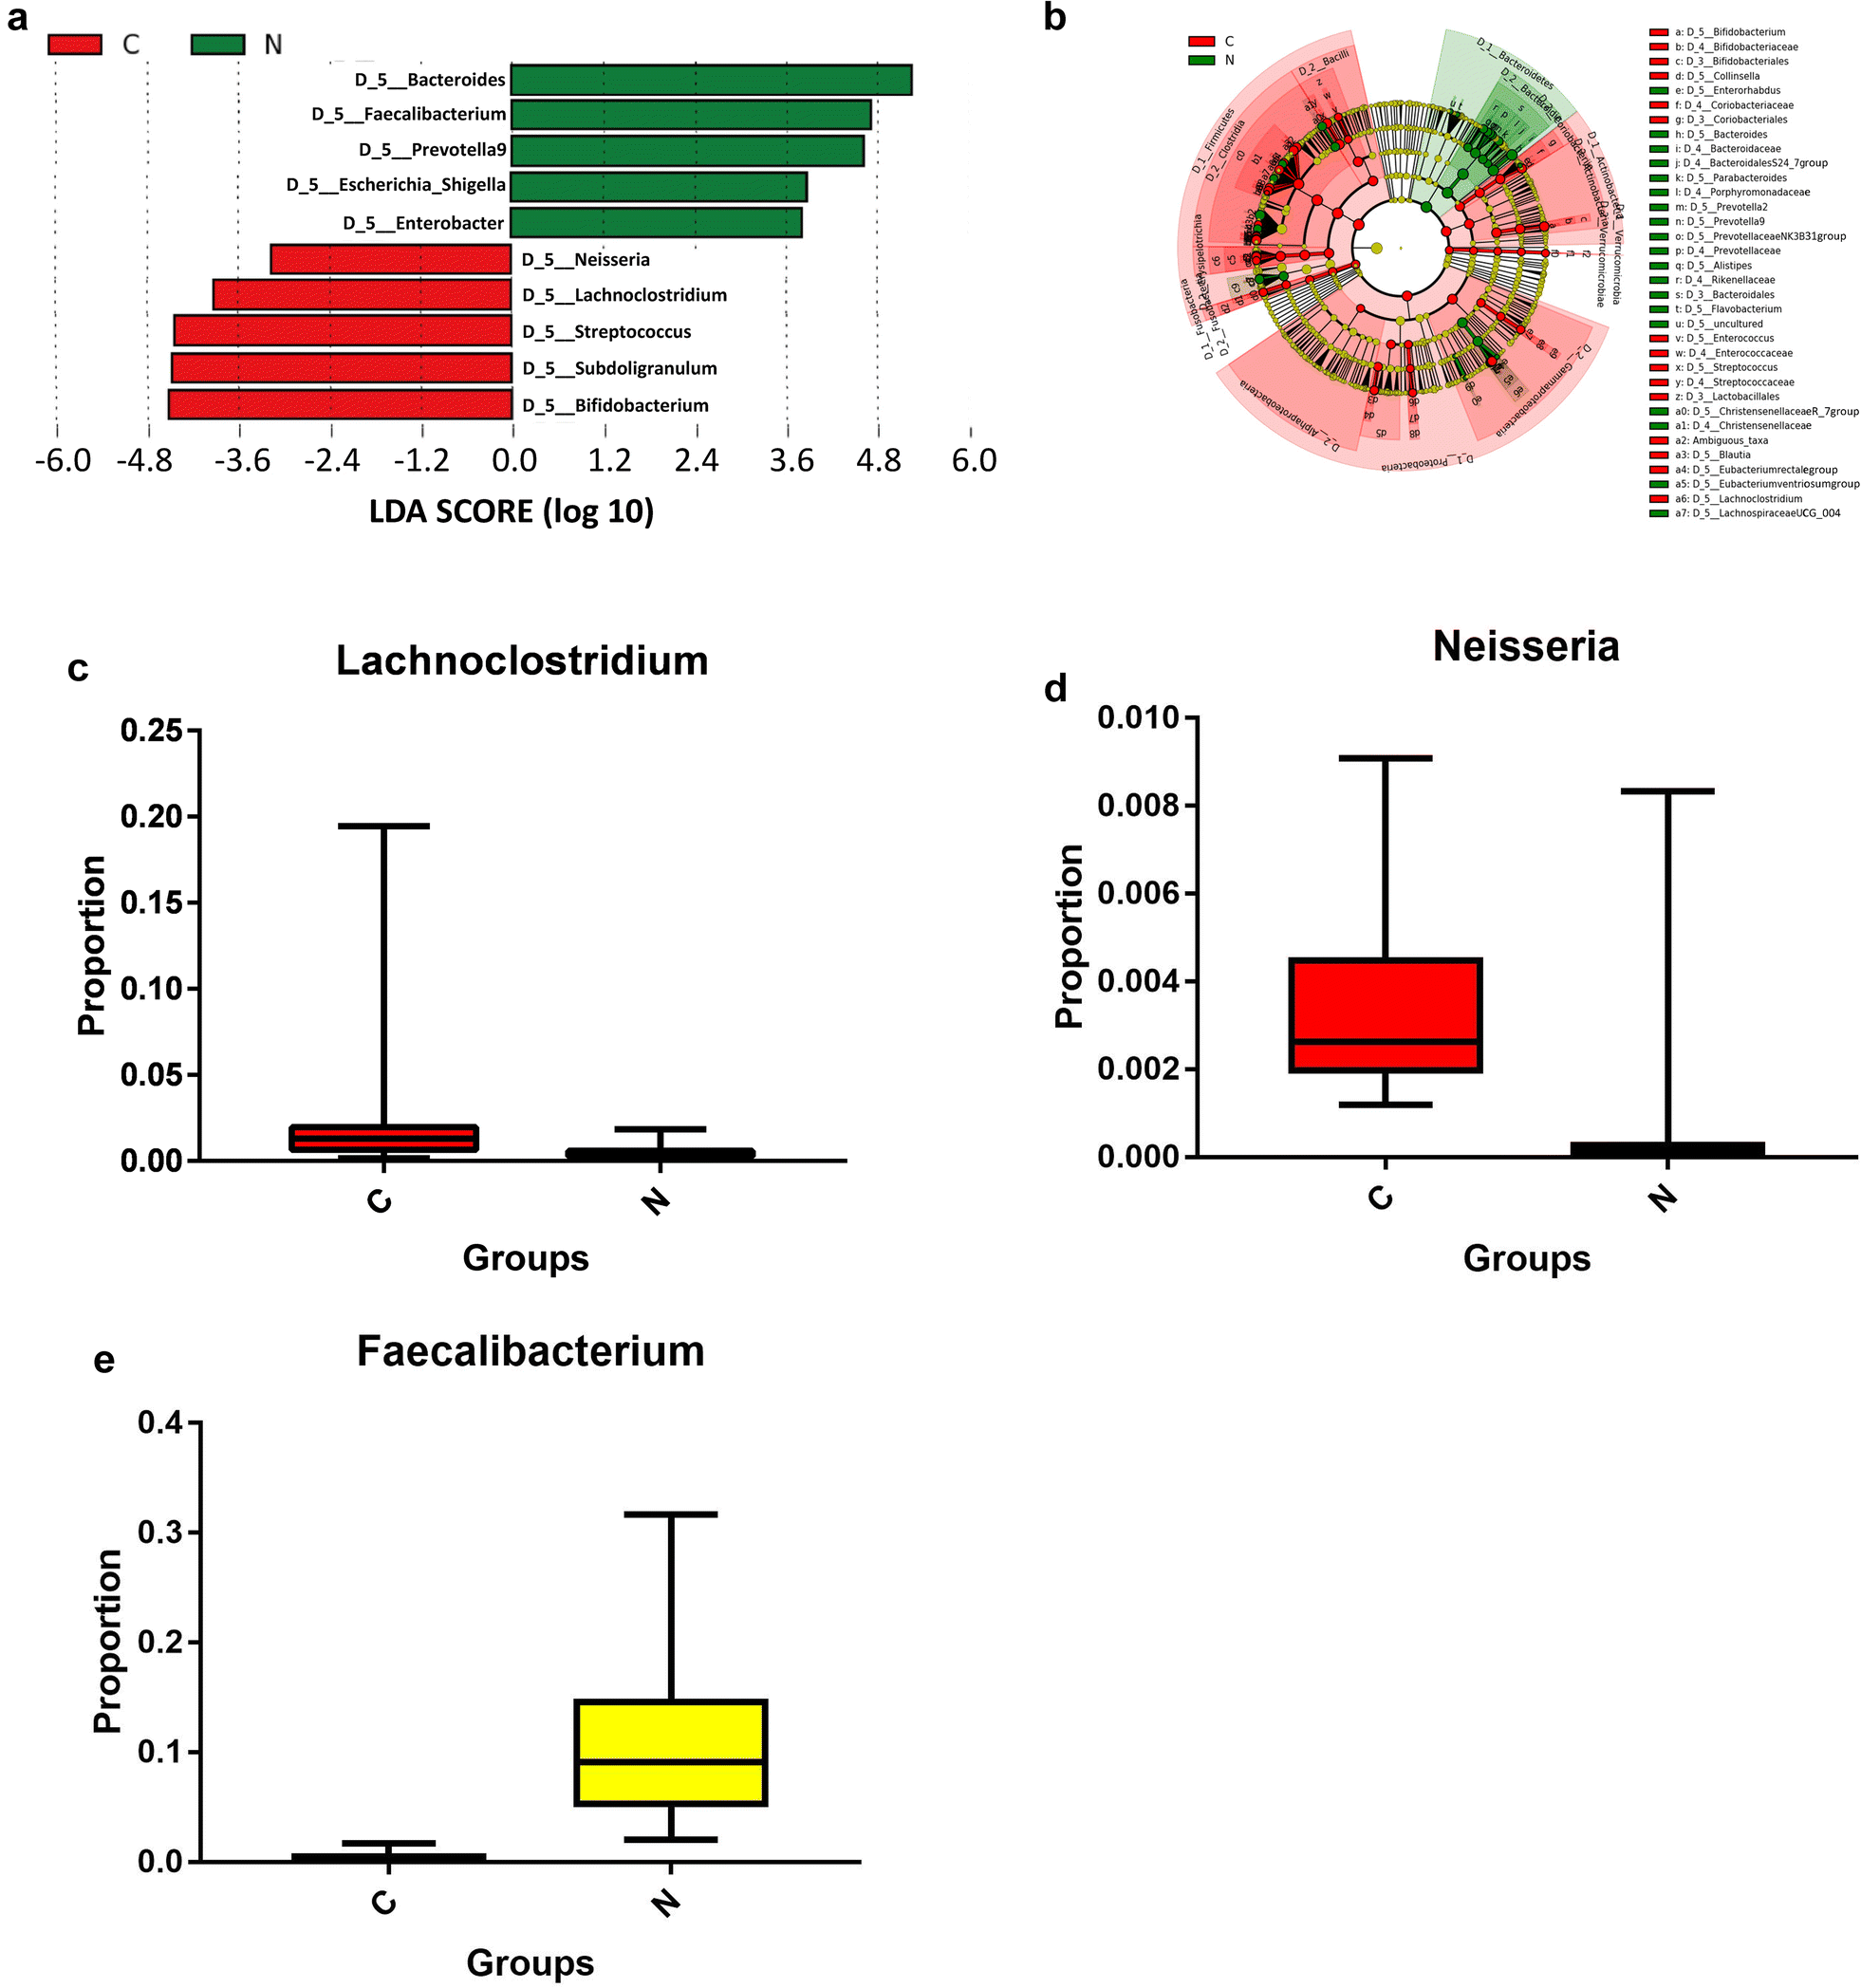 Dysbiosis of the gut microbiome is associated with CKD5 and